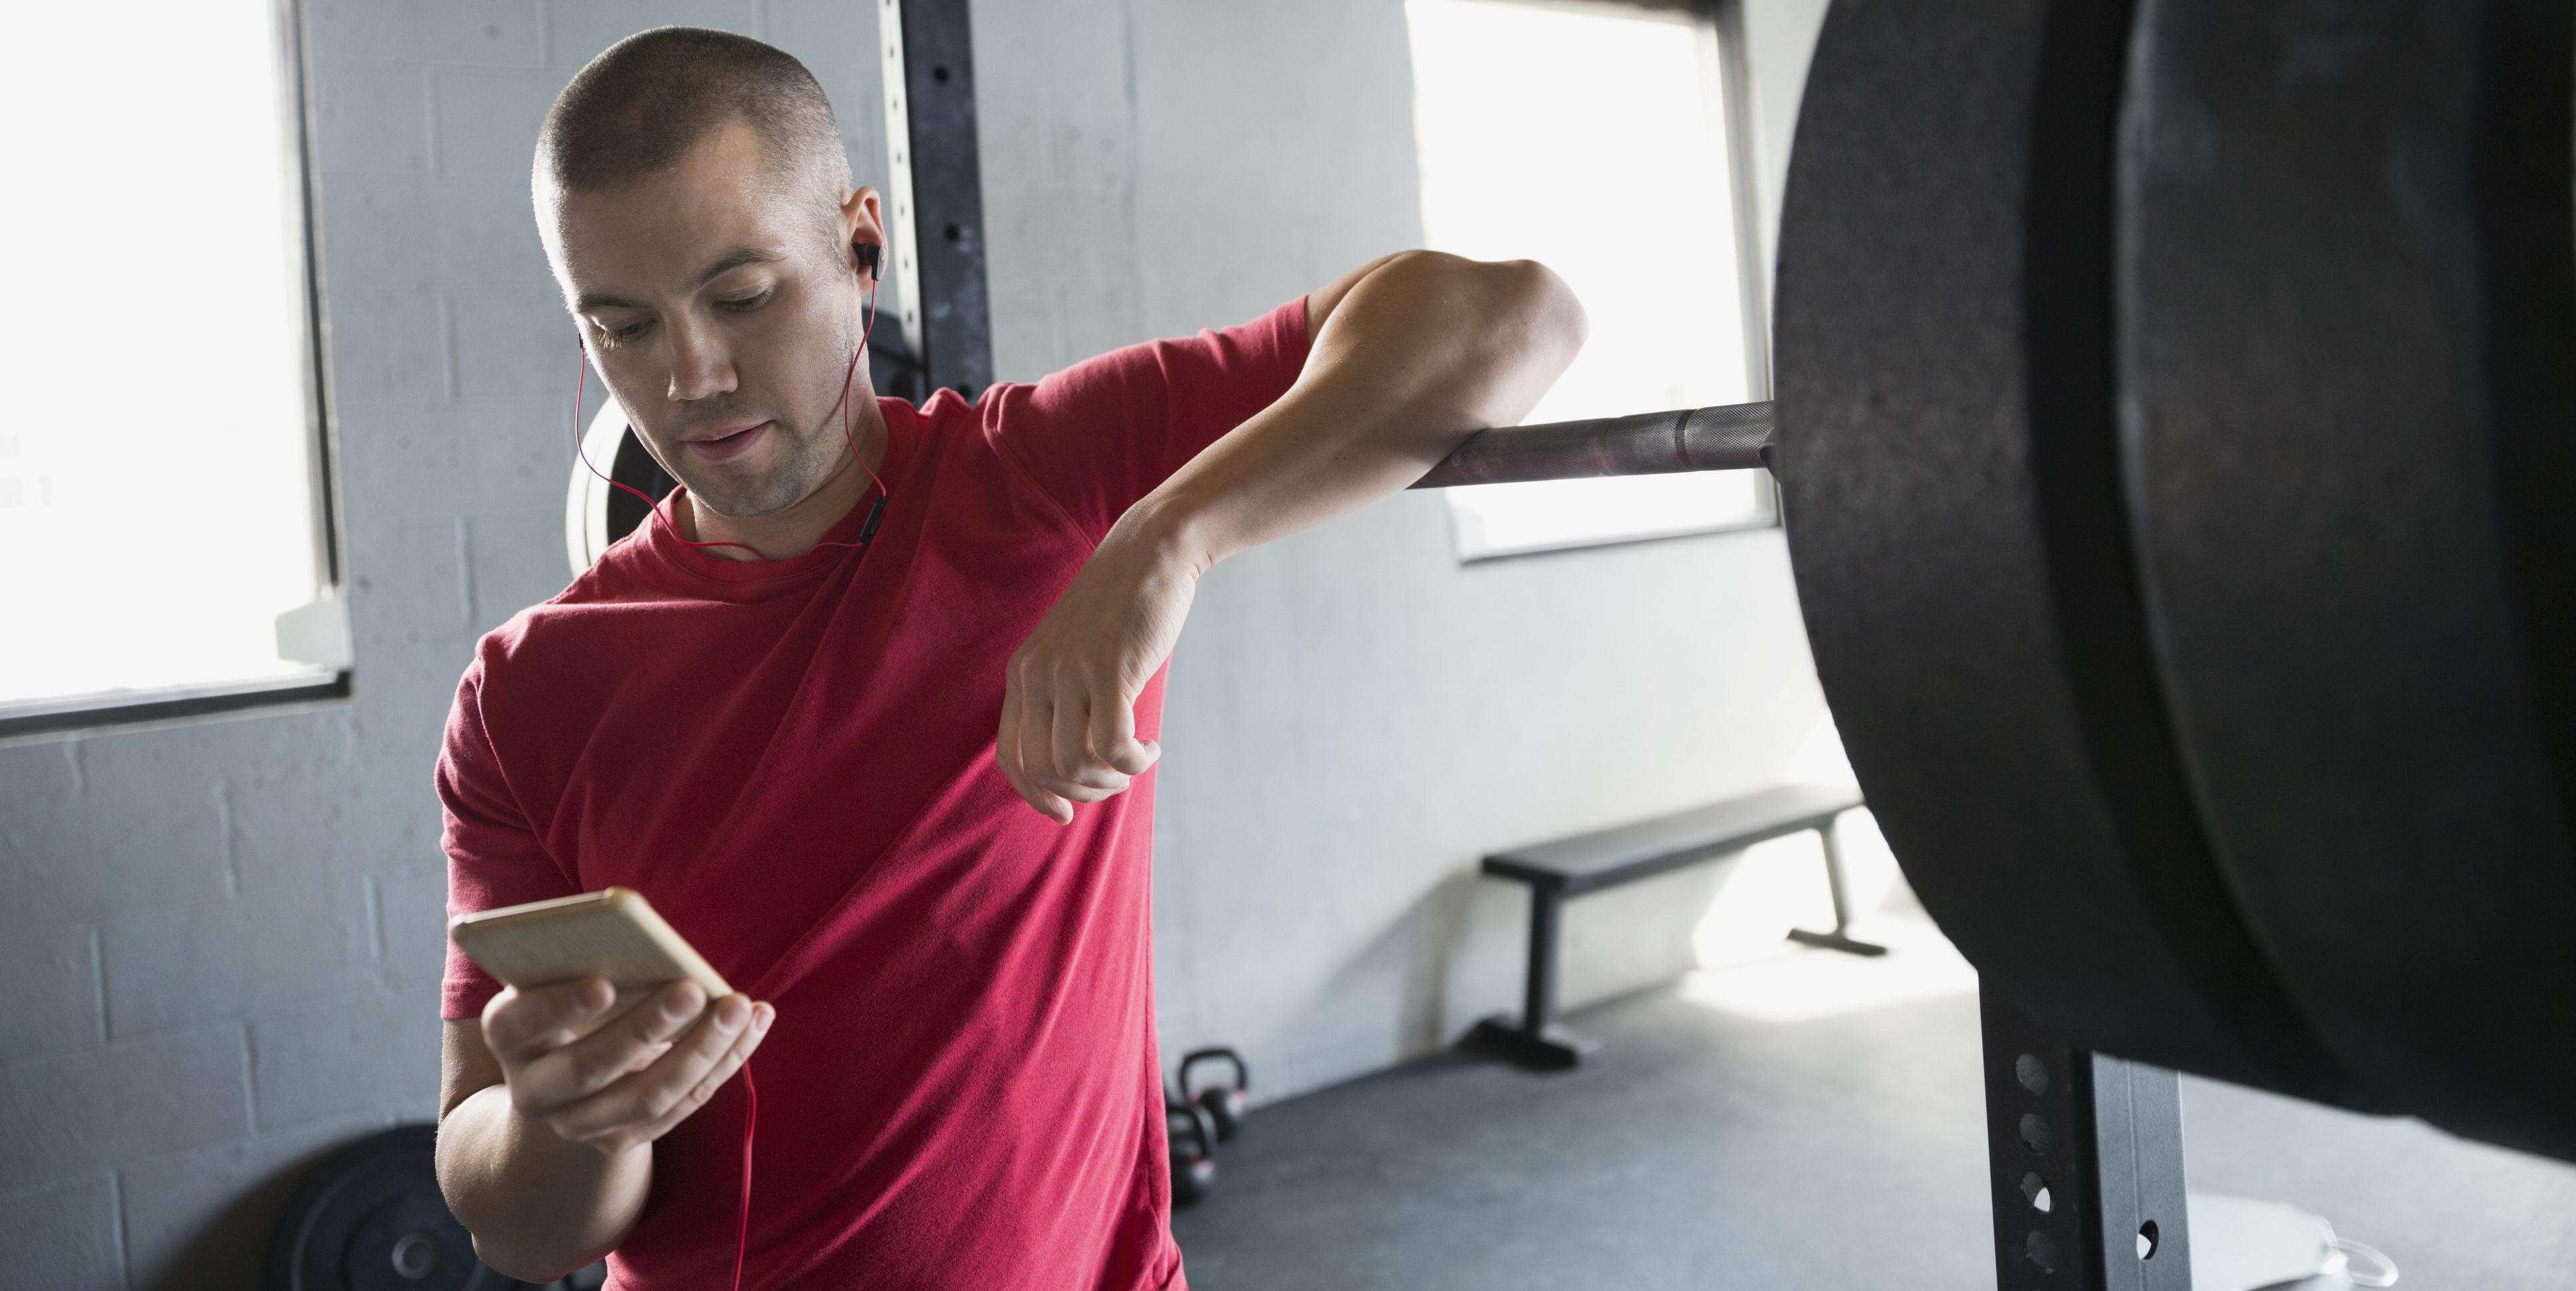 The 15 Best Apps to Help You Get Fit